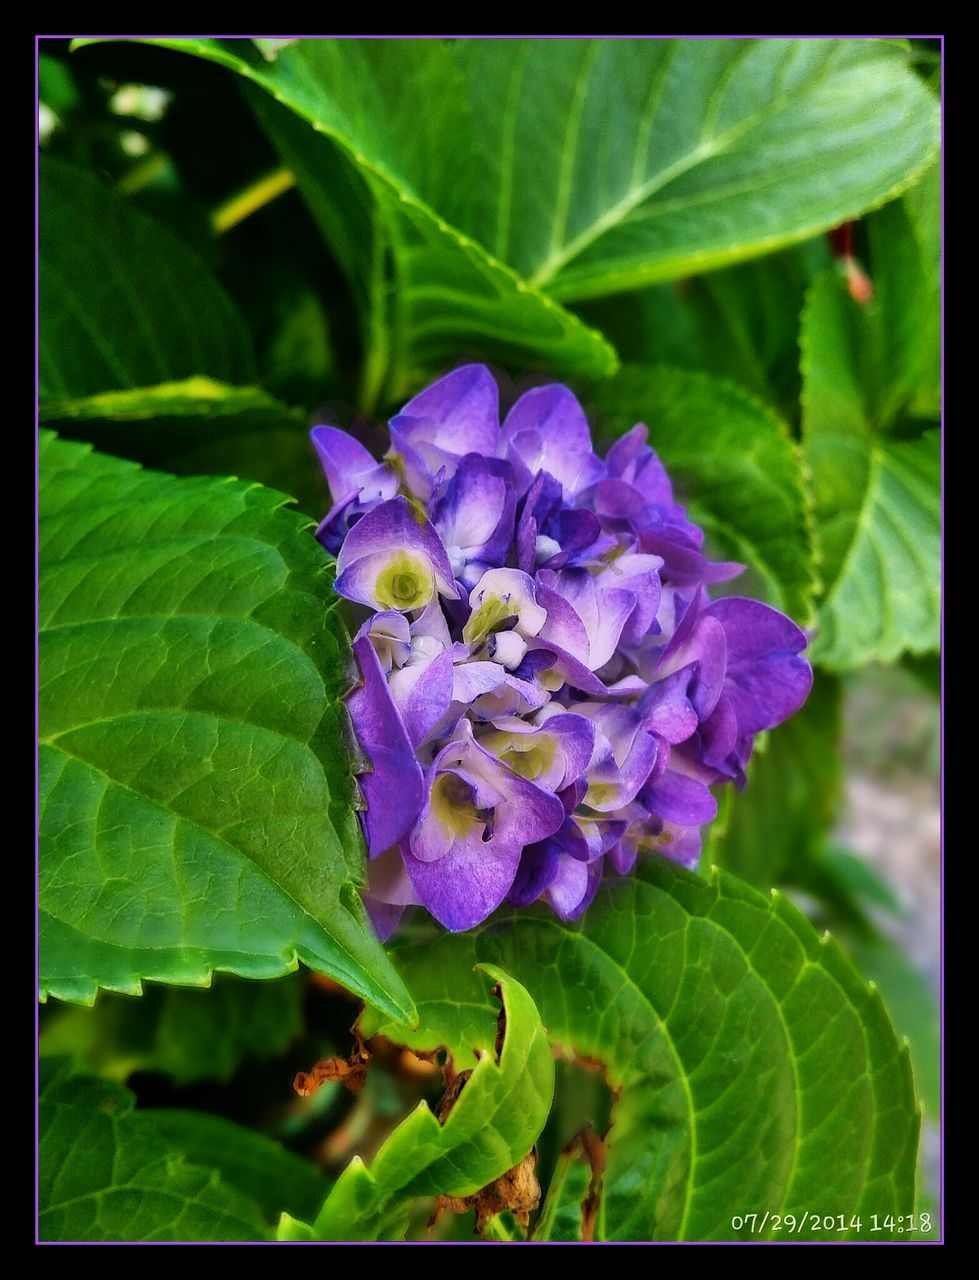 leaf, purple, flower, growth, fragility, beauty in nature, plant, nature, freshness, petal, green color, day, outdoors, close-up, no people, flower head, blooming